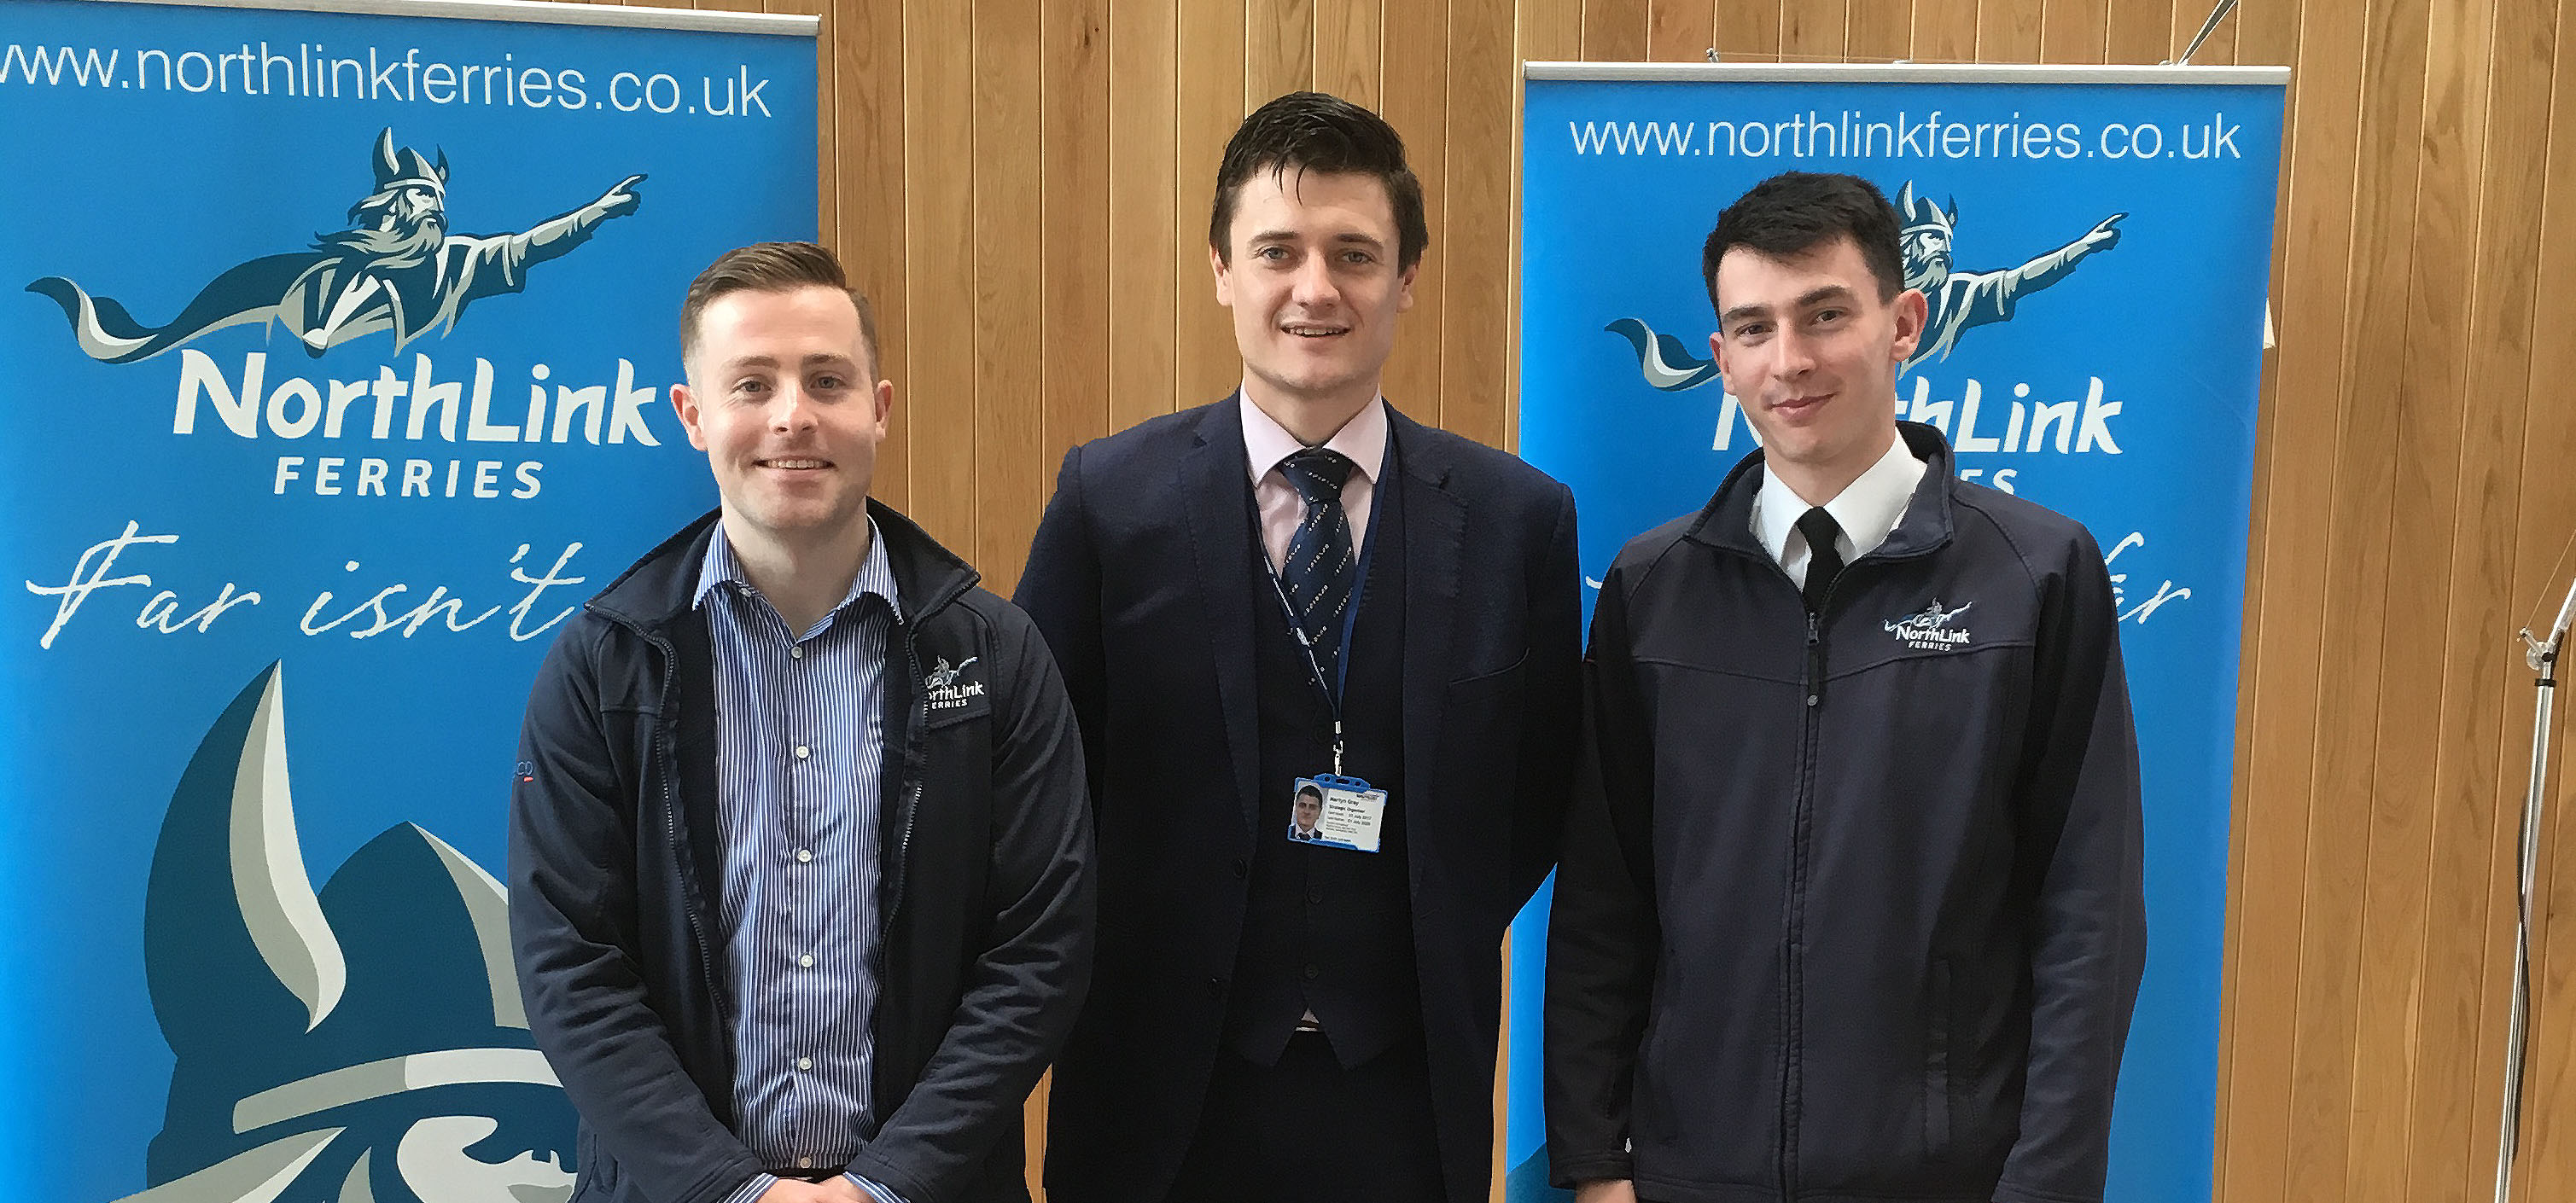 First job fair staged by Nautilus International for UK cadets